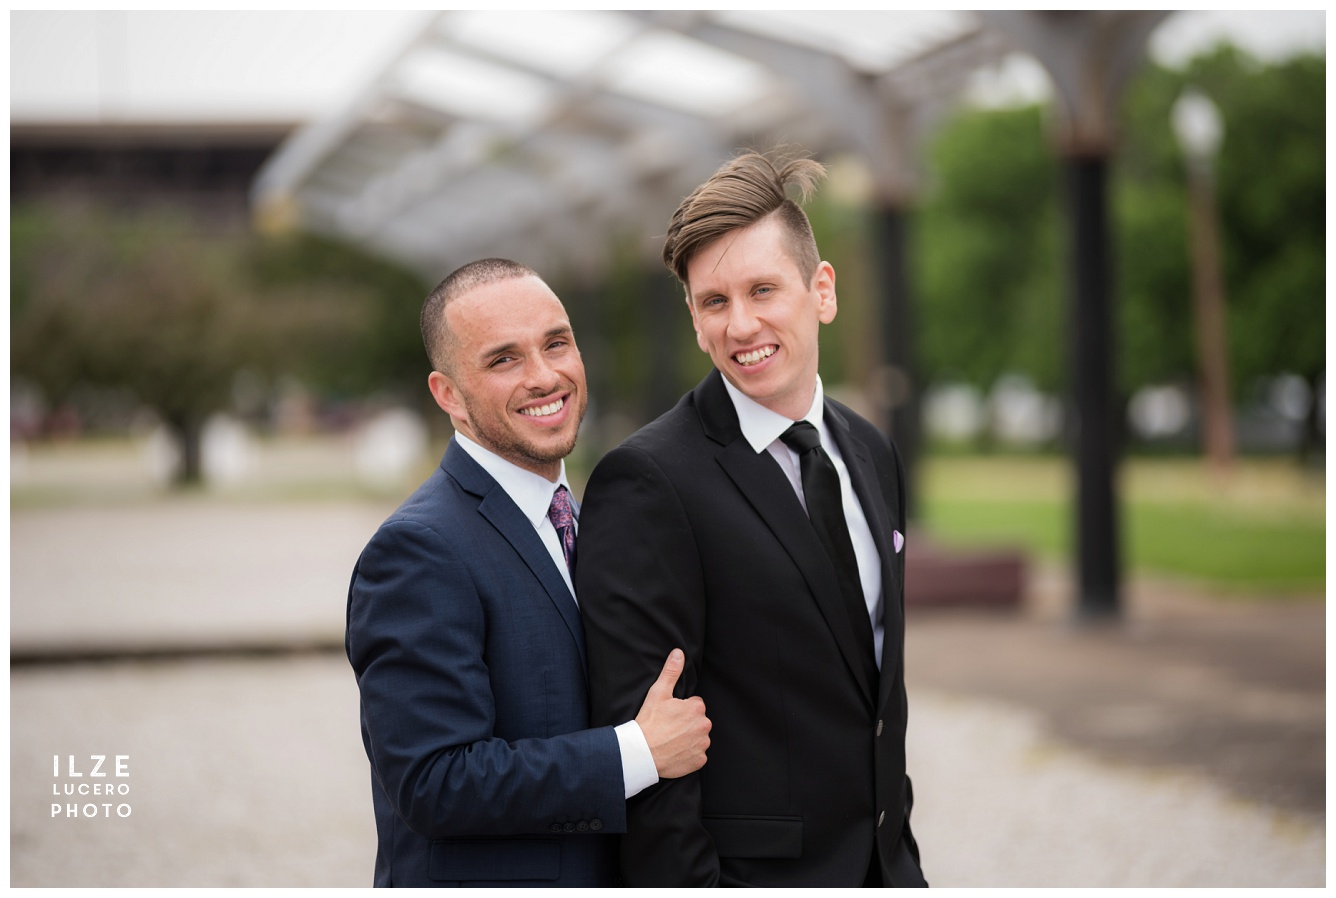 Same sex couple photographer